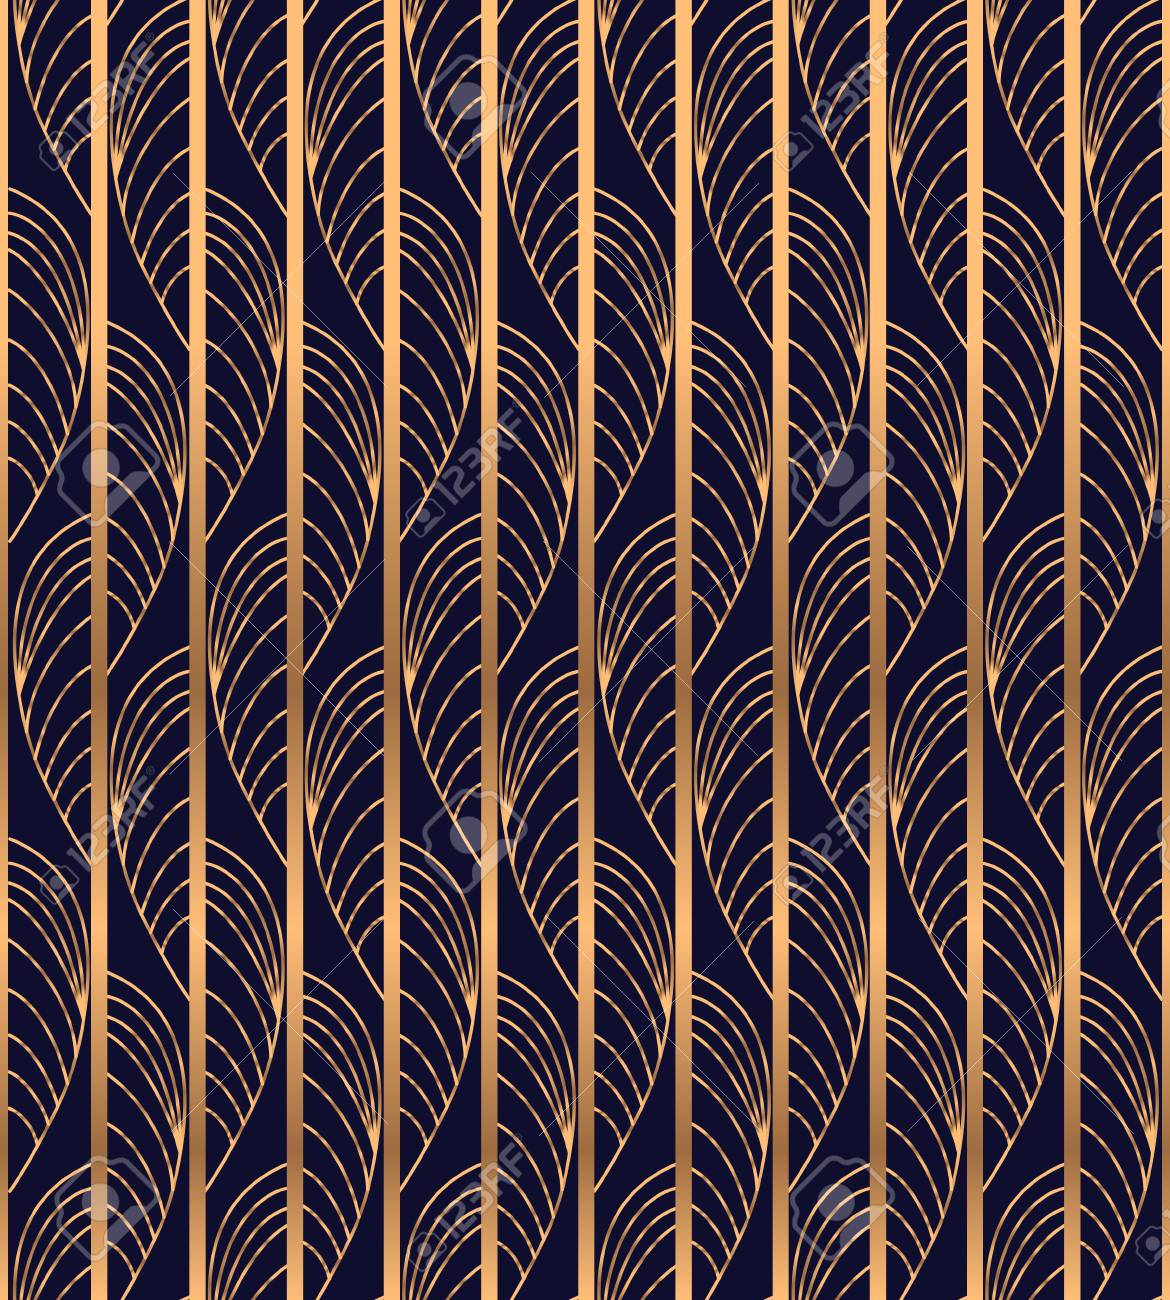 Peacock Feather Luxury Background Vector Gold Waves Pattern 1170x1300